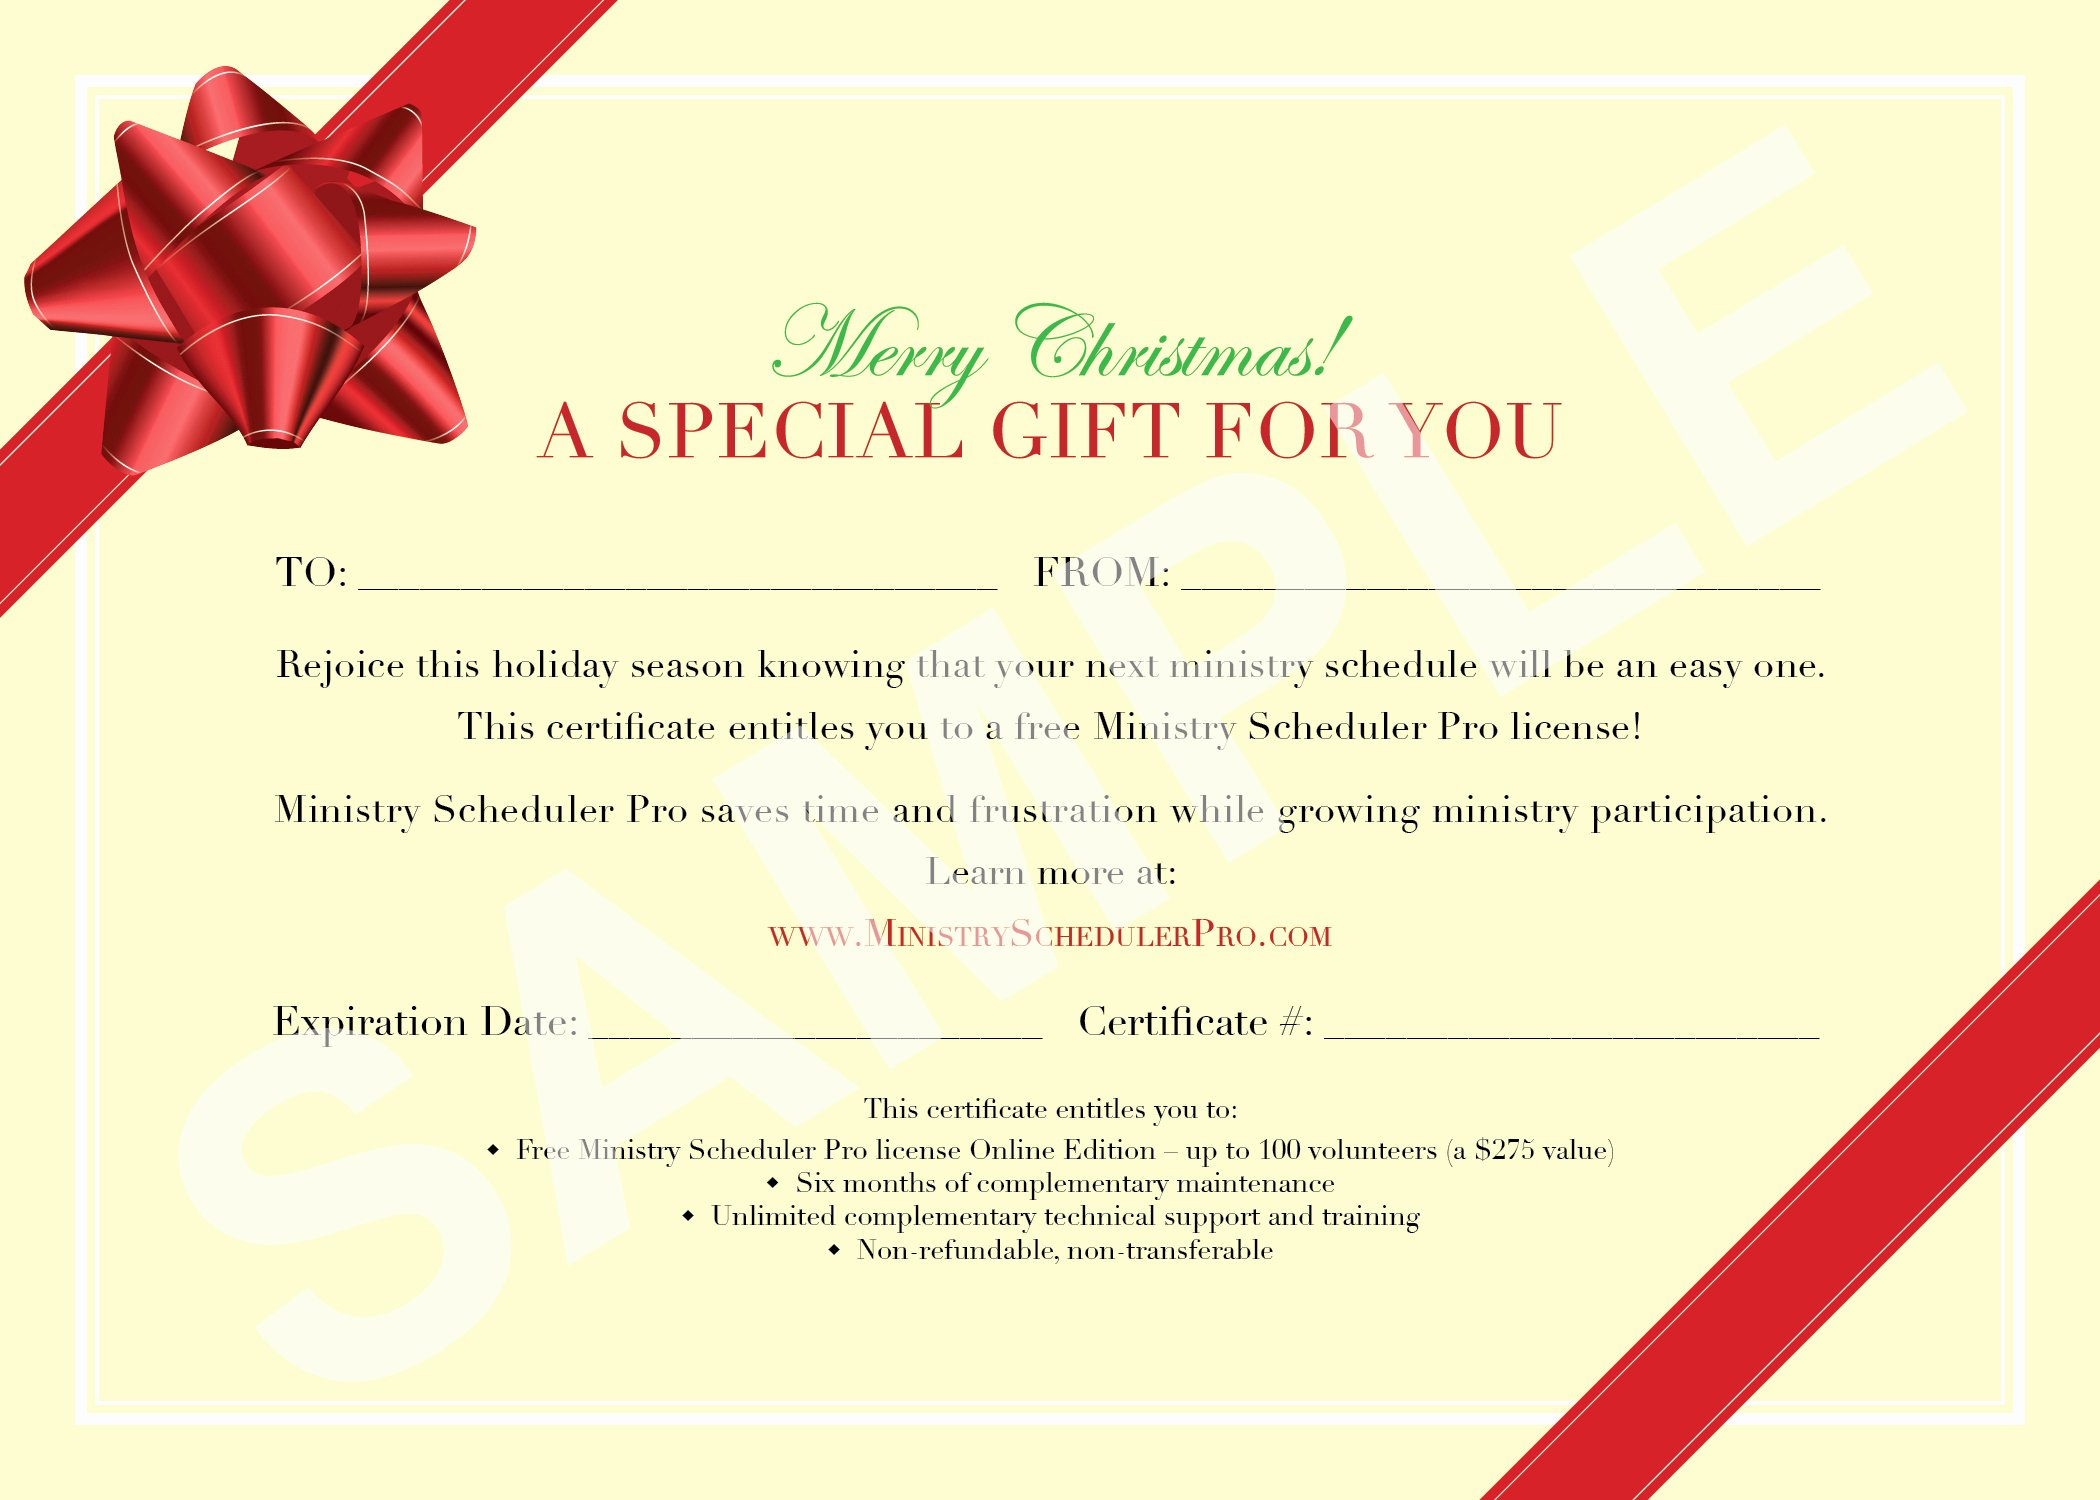 Holiday Gift Certificate Template Unique Christmas Gift Voucher Design Template with Red Ribbon and